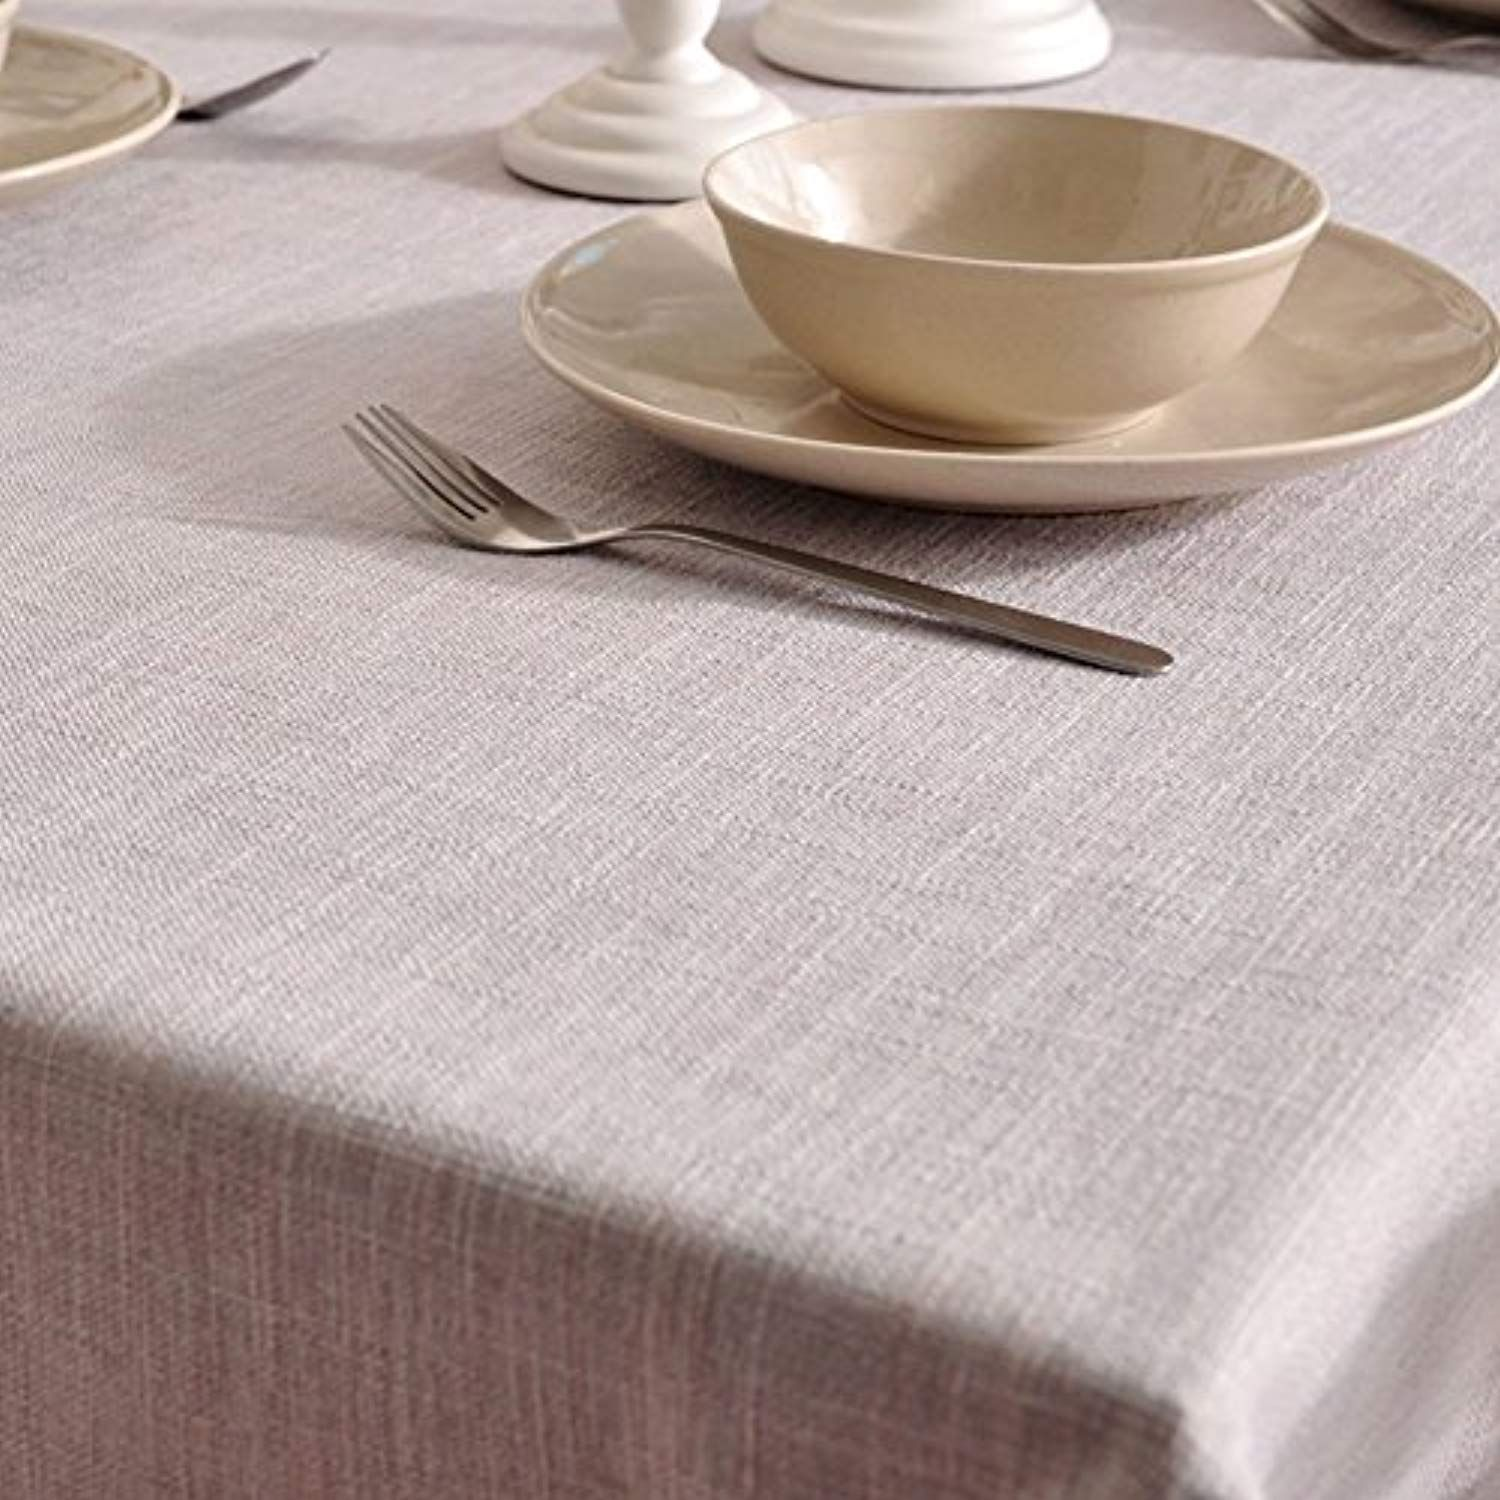 Incredible Tre Classic Padded Solid Color Tablecloth Fabric Table Download Free Architecture Designs Scobabritishbridgeorg